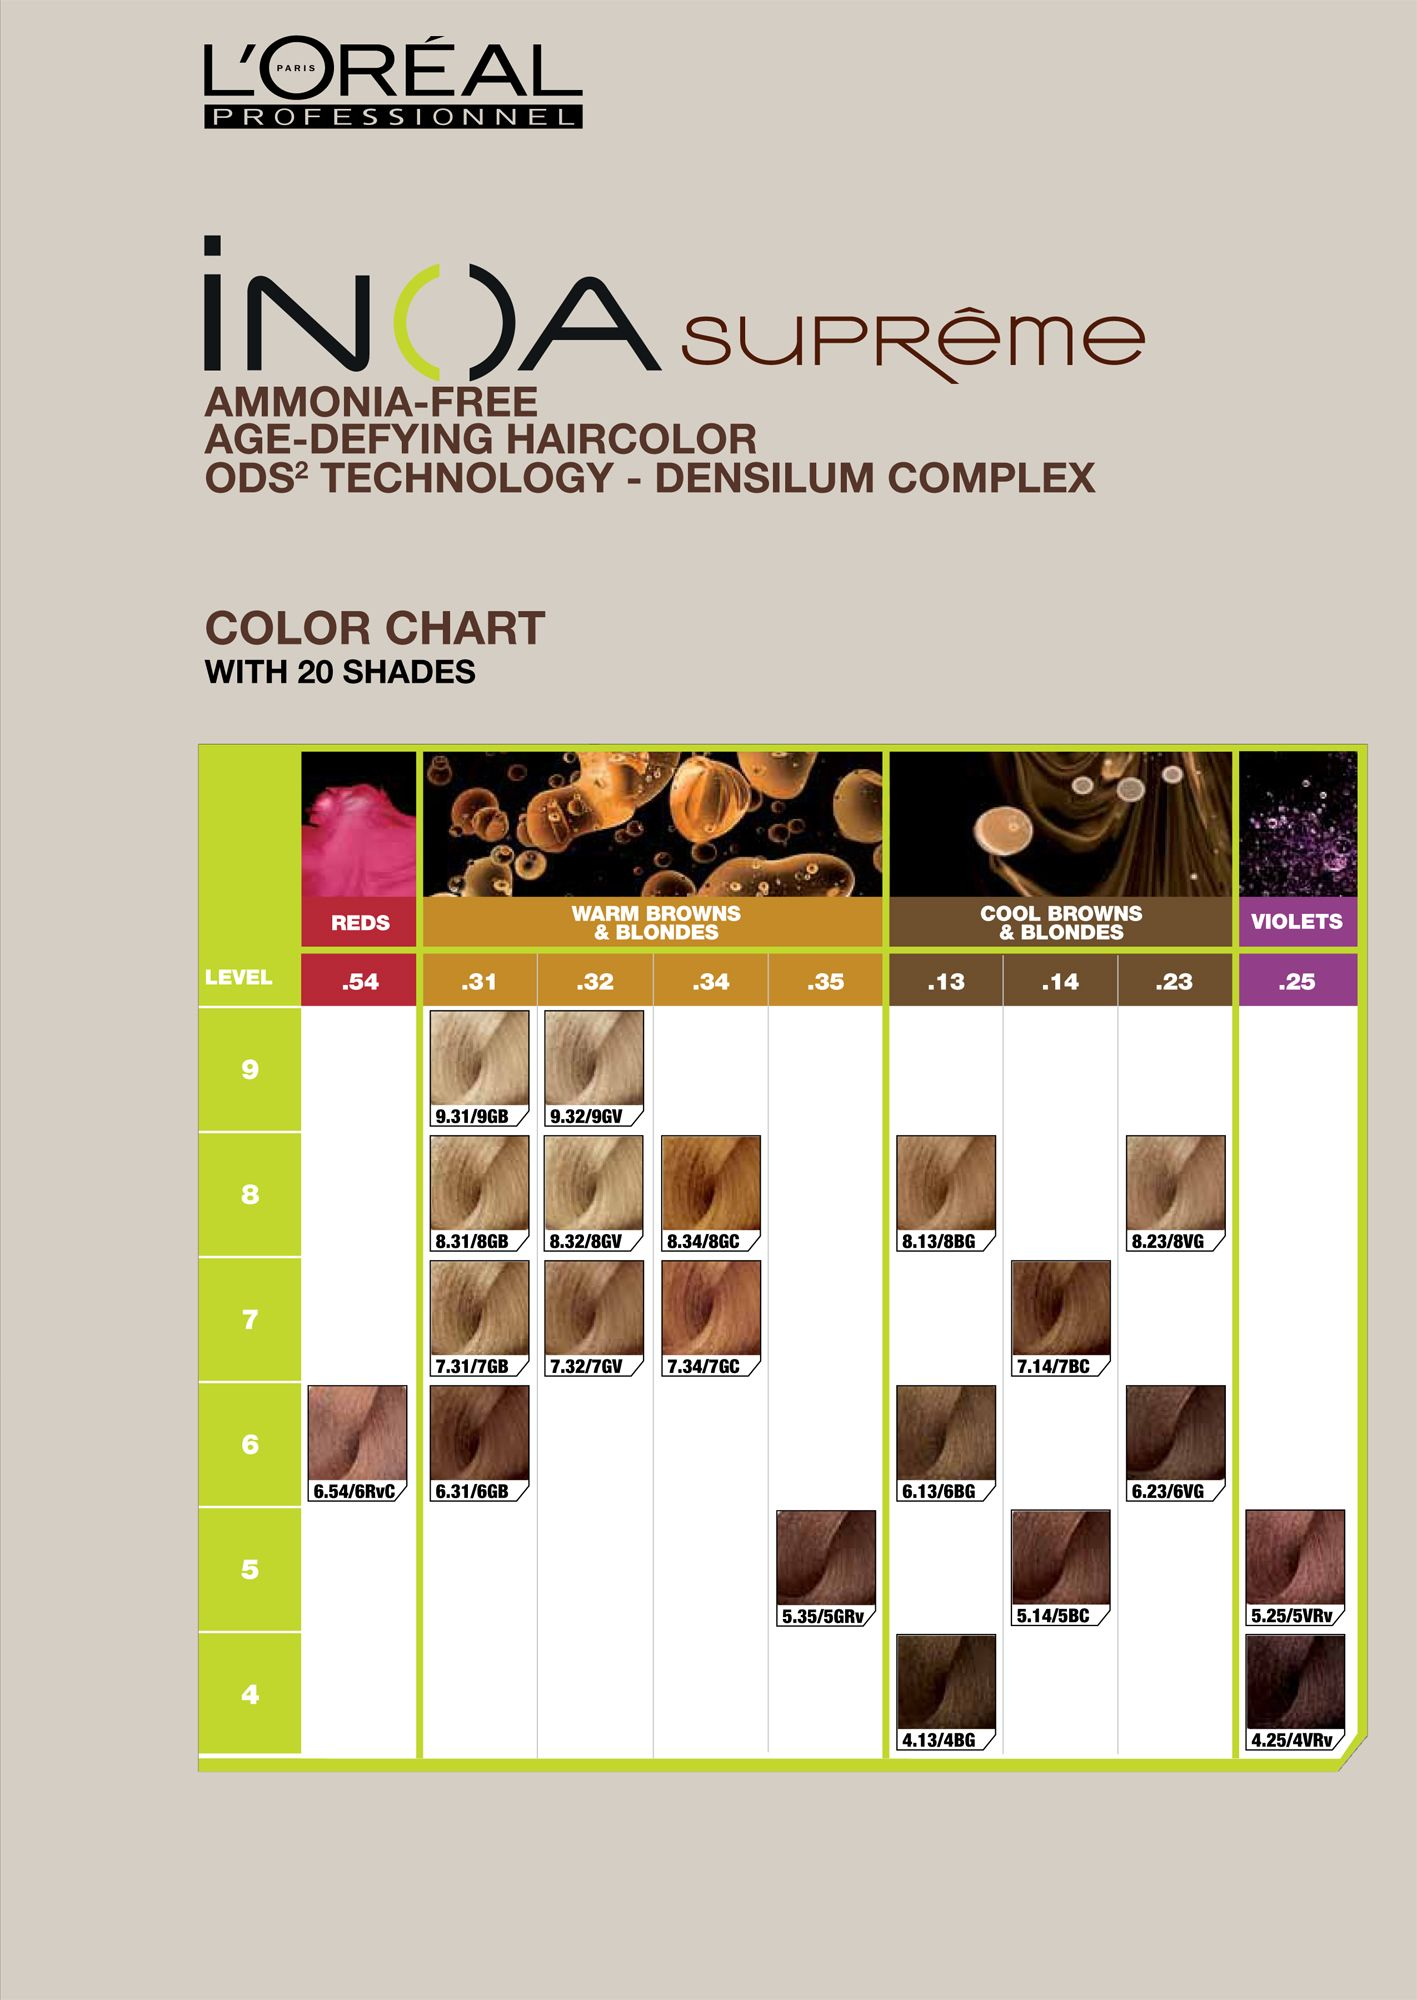 oreal professionnel inoa supreme with ods color chart also hair rh pinterest